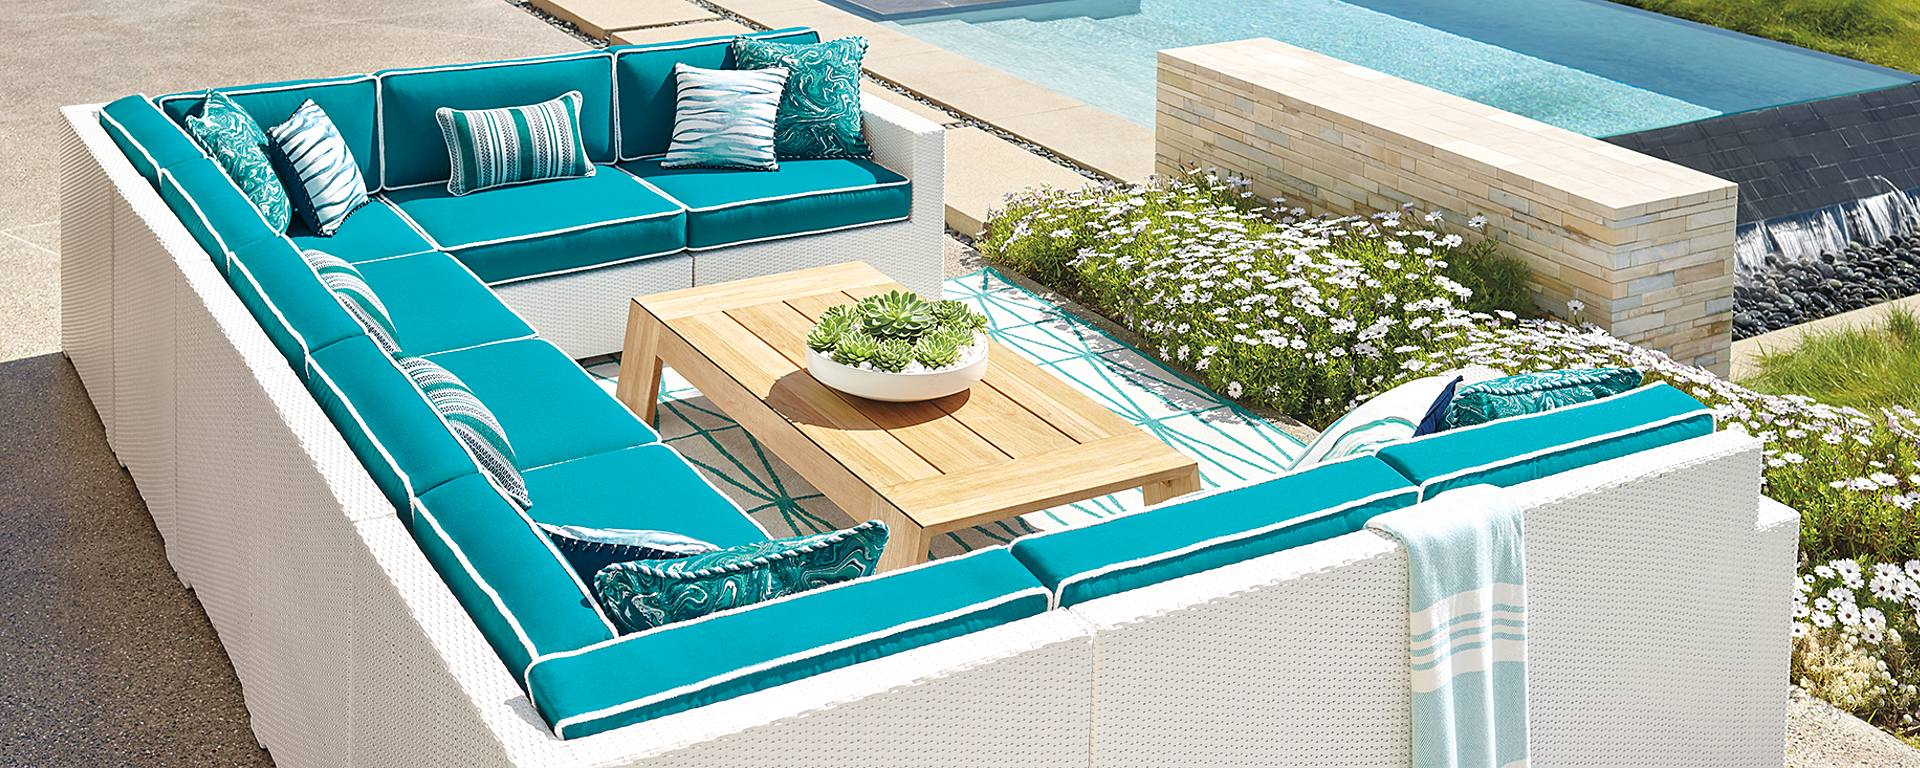 HOW TO CREATE AN OUTDOOR SPACE FOR EVERY OCCASION